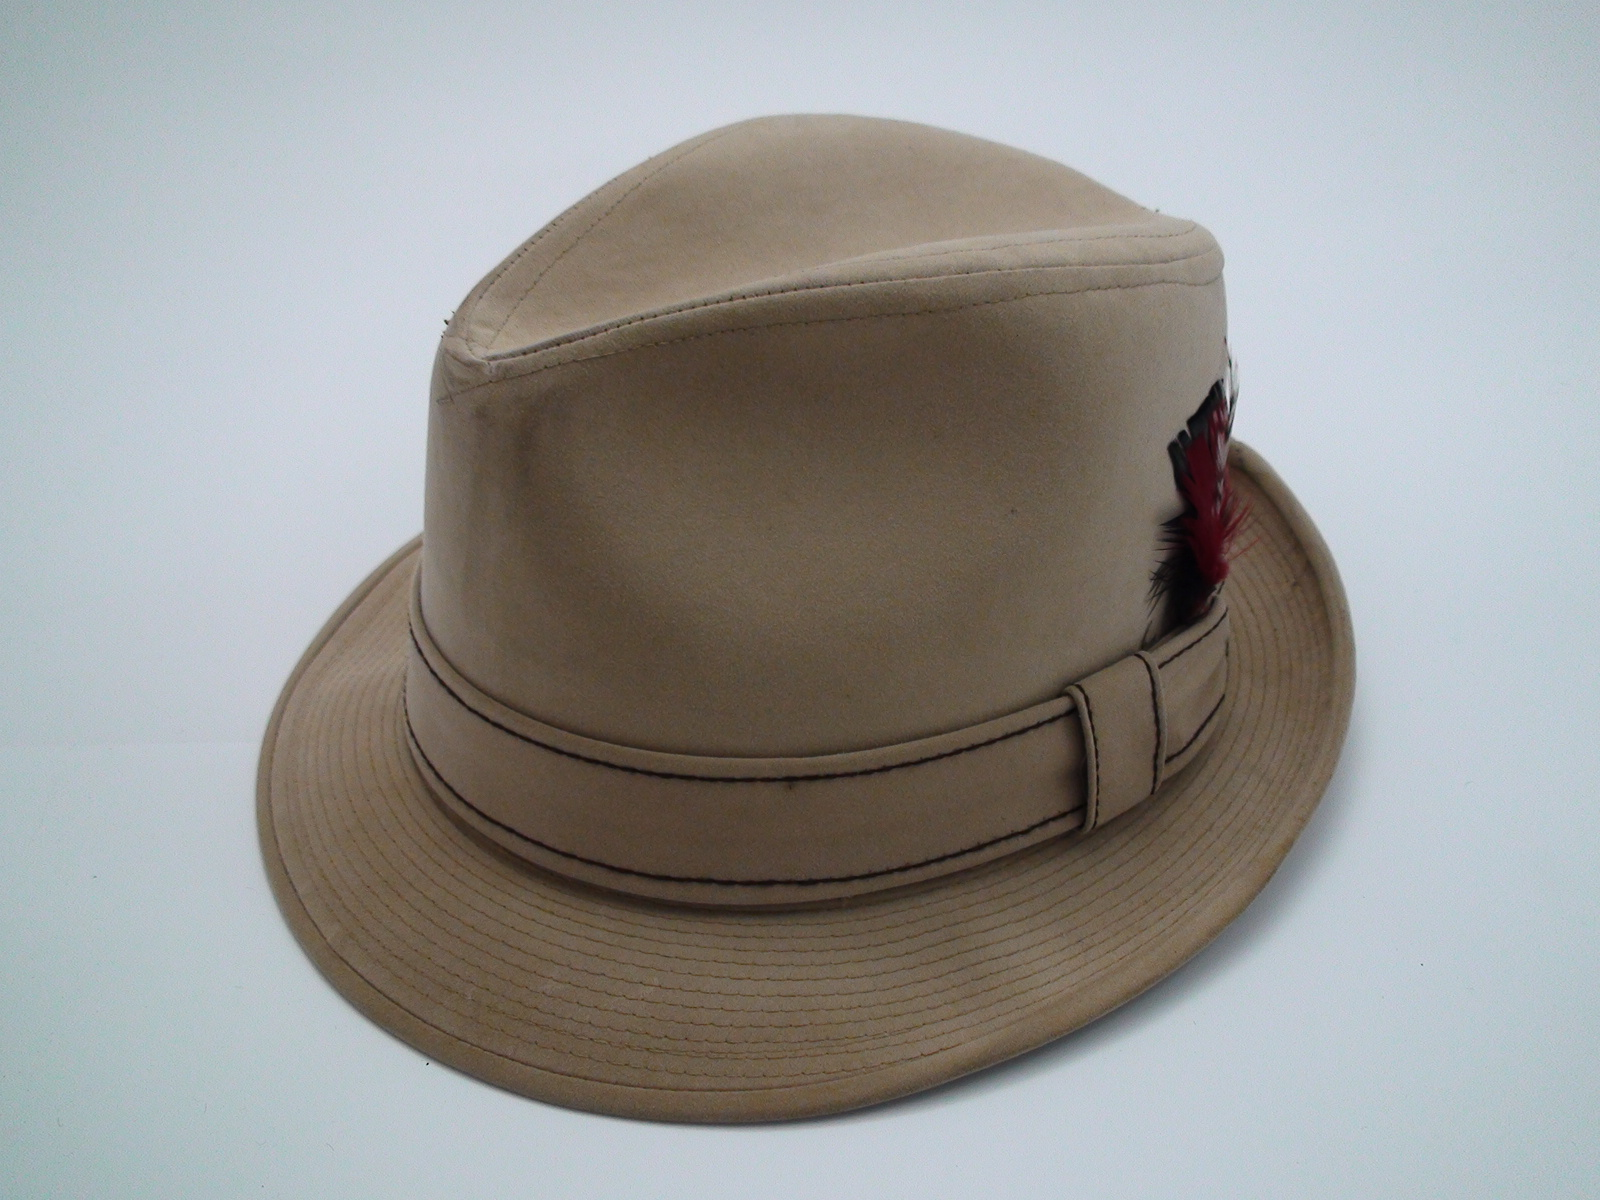 0b9b3e8e7ef76 Resistol Self Conforming Tan Suede Trilby Fedora Hat Size 7 1 4